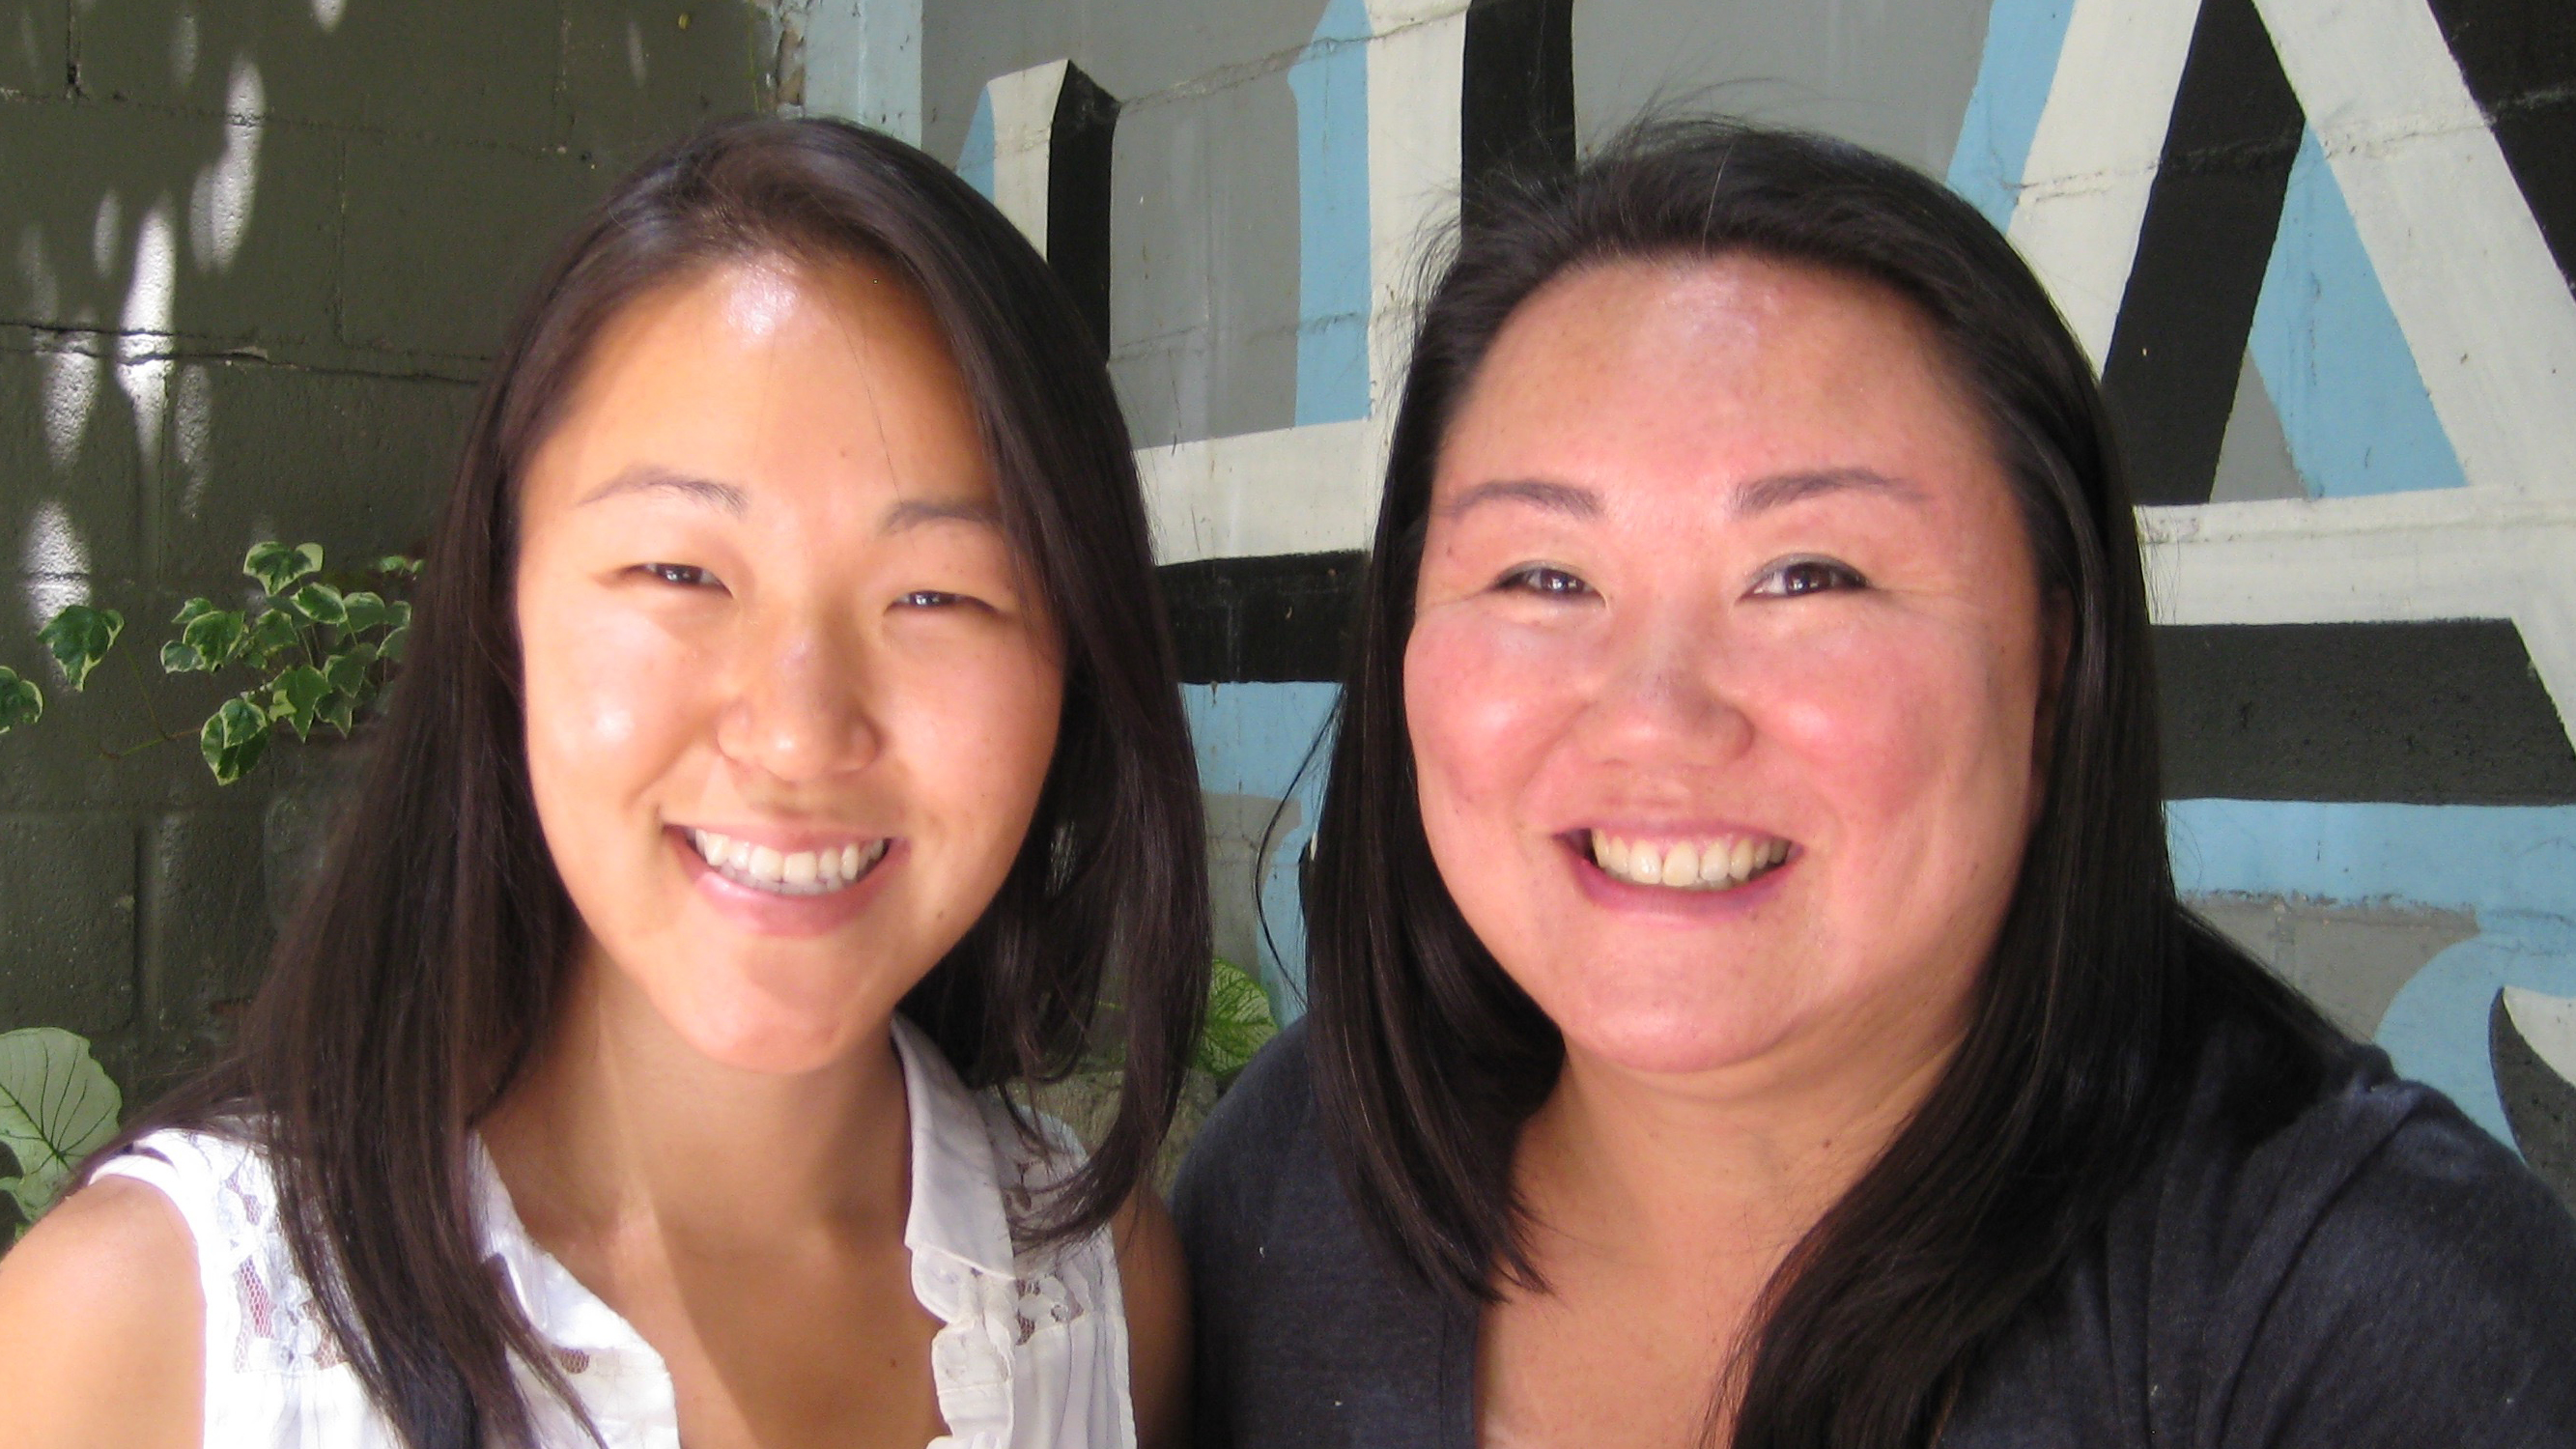 Kaomi Goetz, 44, (r) with distant relative, Alice Thompson, 28. They're both Korean-American adoptees who found a shared genetic connection on a DNA database, after they had met by chance at a gathering for adoptees in Brooklyn, New York. Kaomi is still t